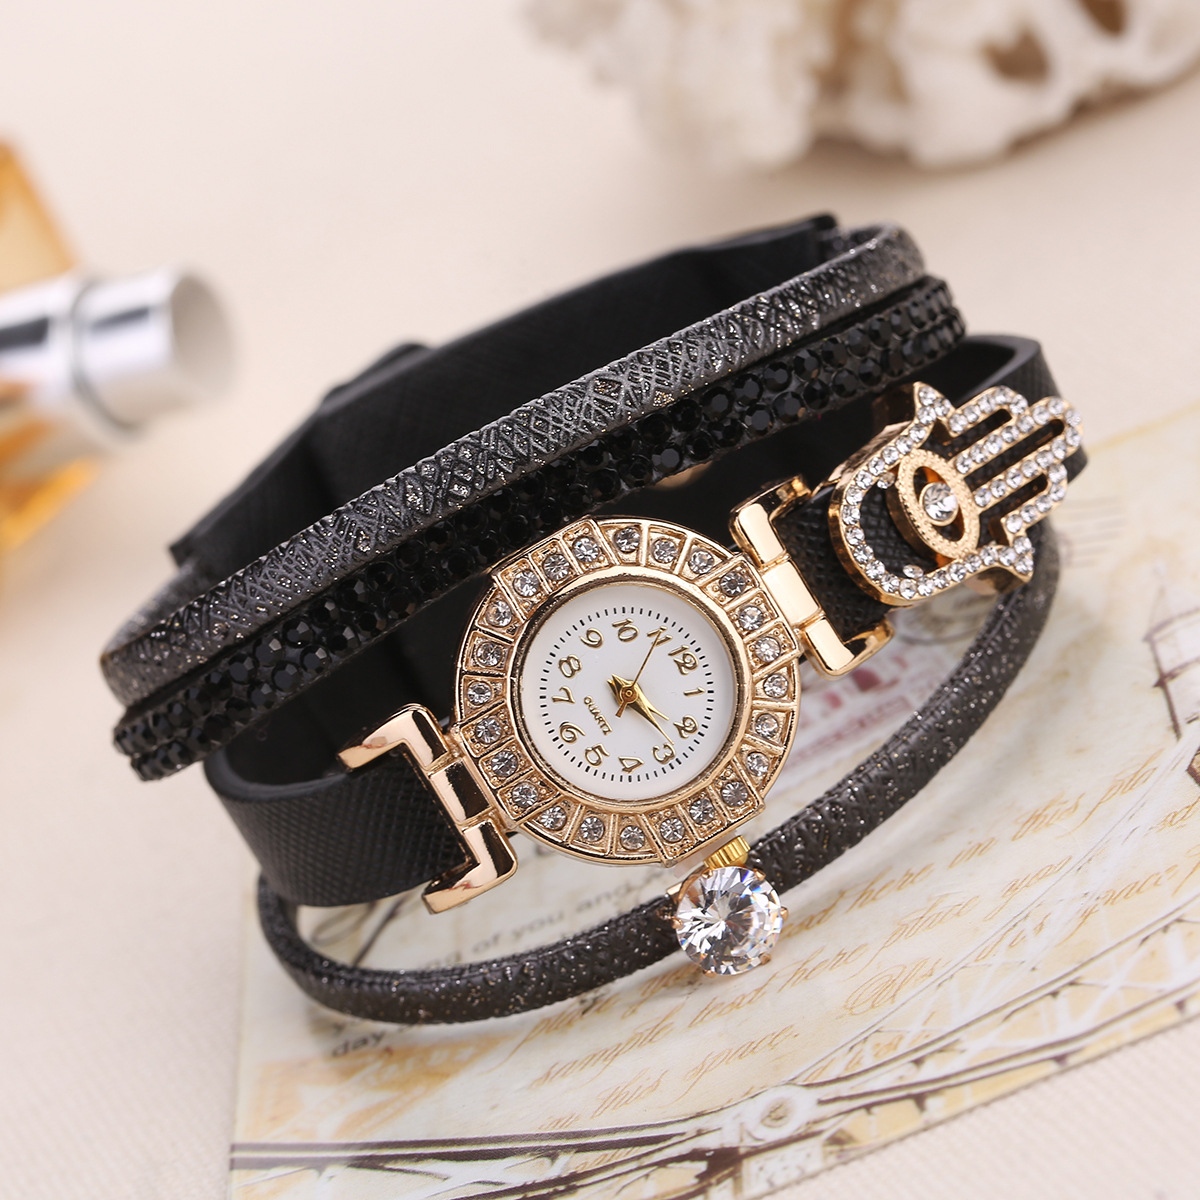 Fashoin Bracelet Watch Women Luxury Gold Crystal Dress Watches Ladies Vintage Quartz Wristwatches Montre Femme Relogio Feminino